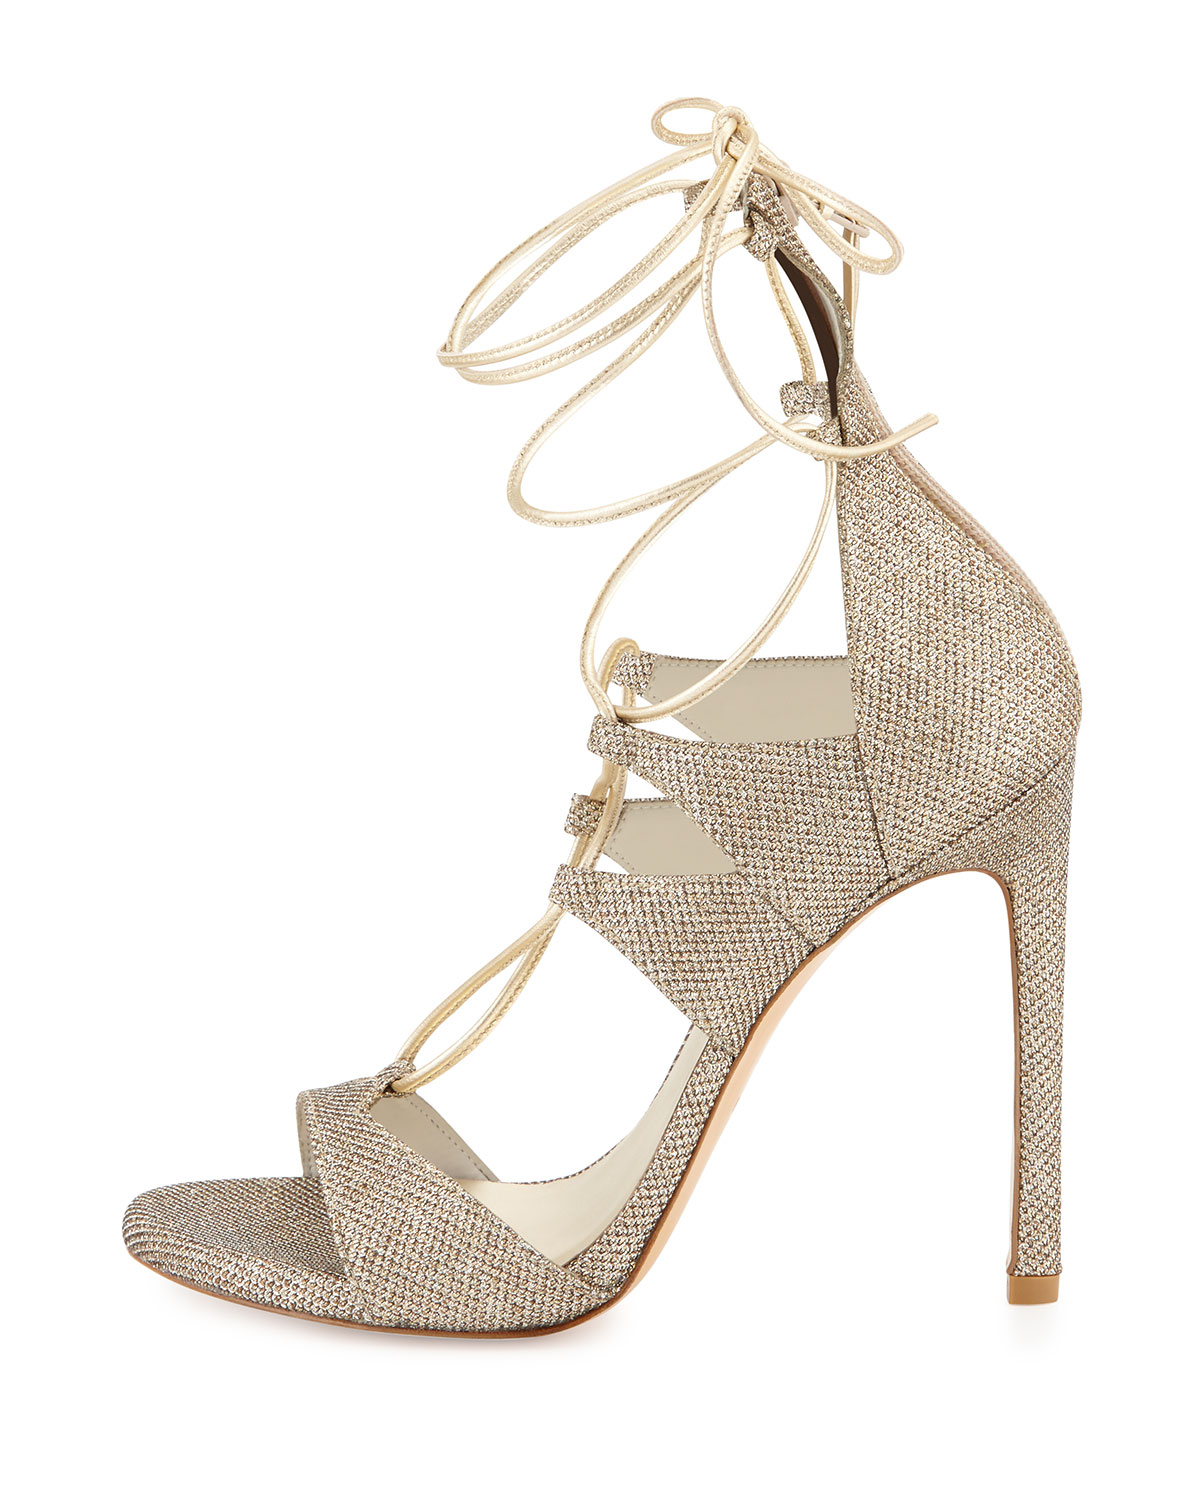 amazon online finishline Stuart Weitzman Lace Glitter Sandals discount how much clearance Manchester Qwy4WE2M8m